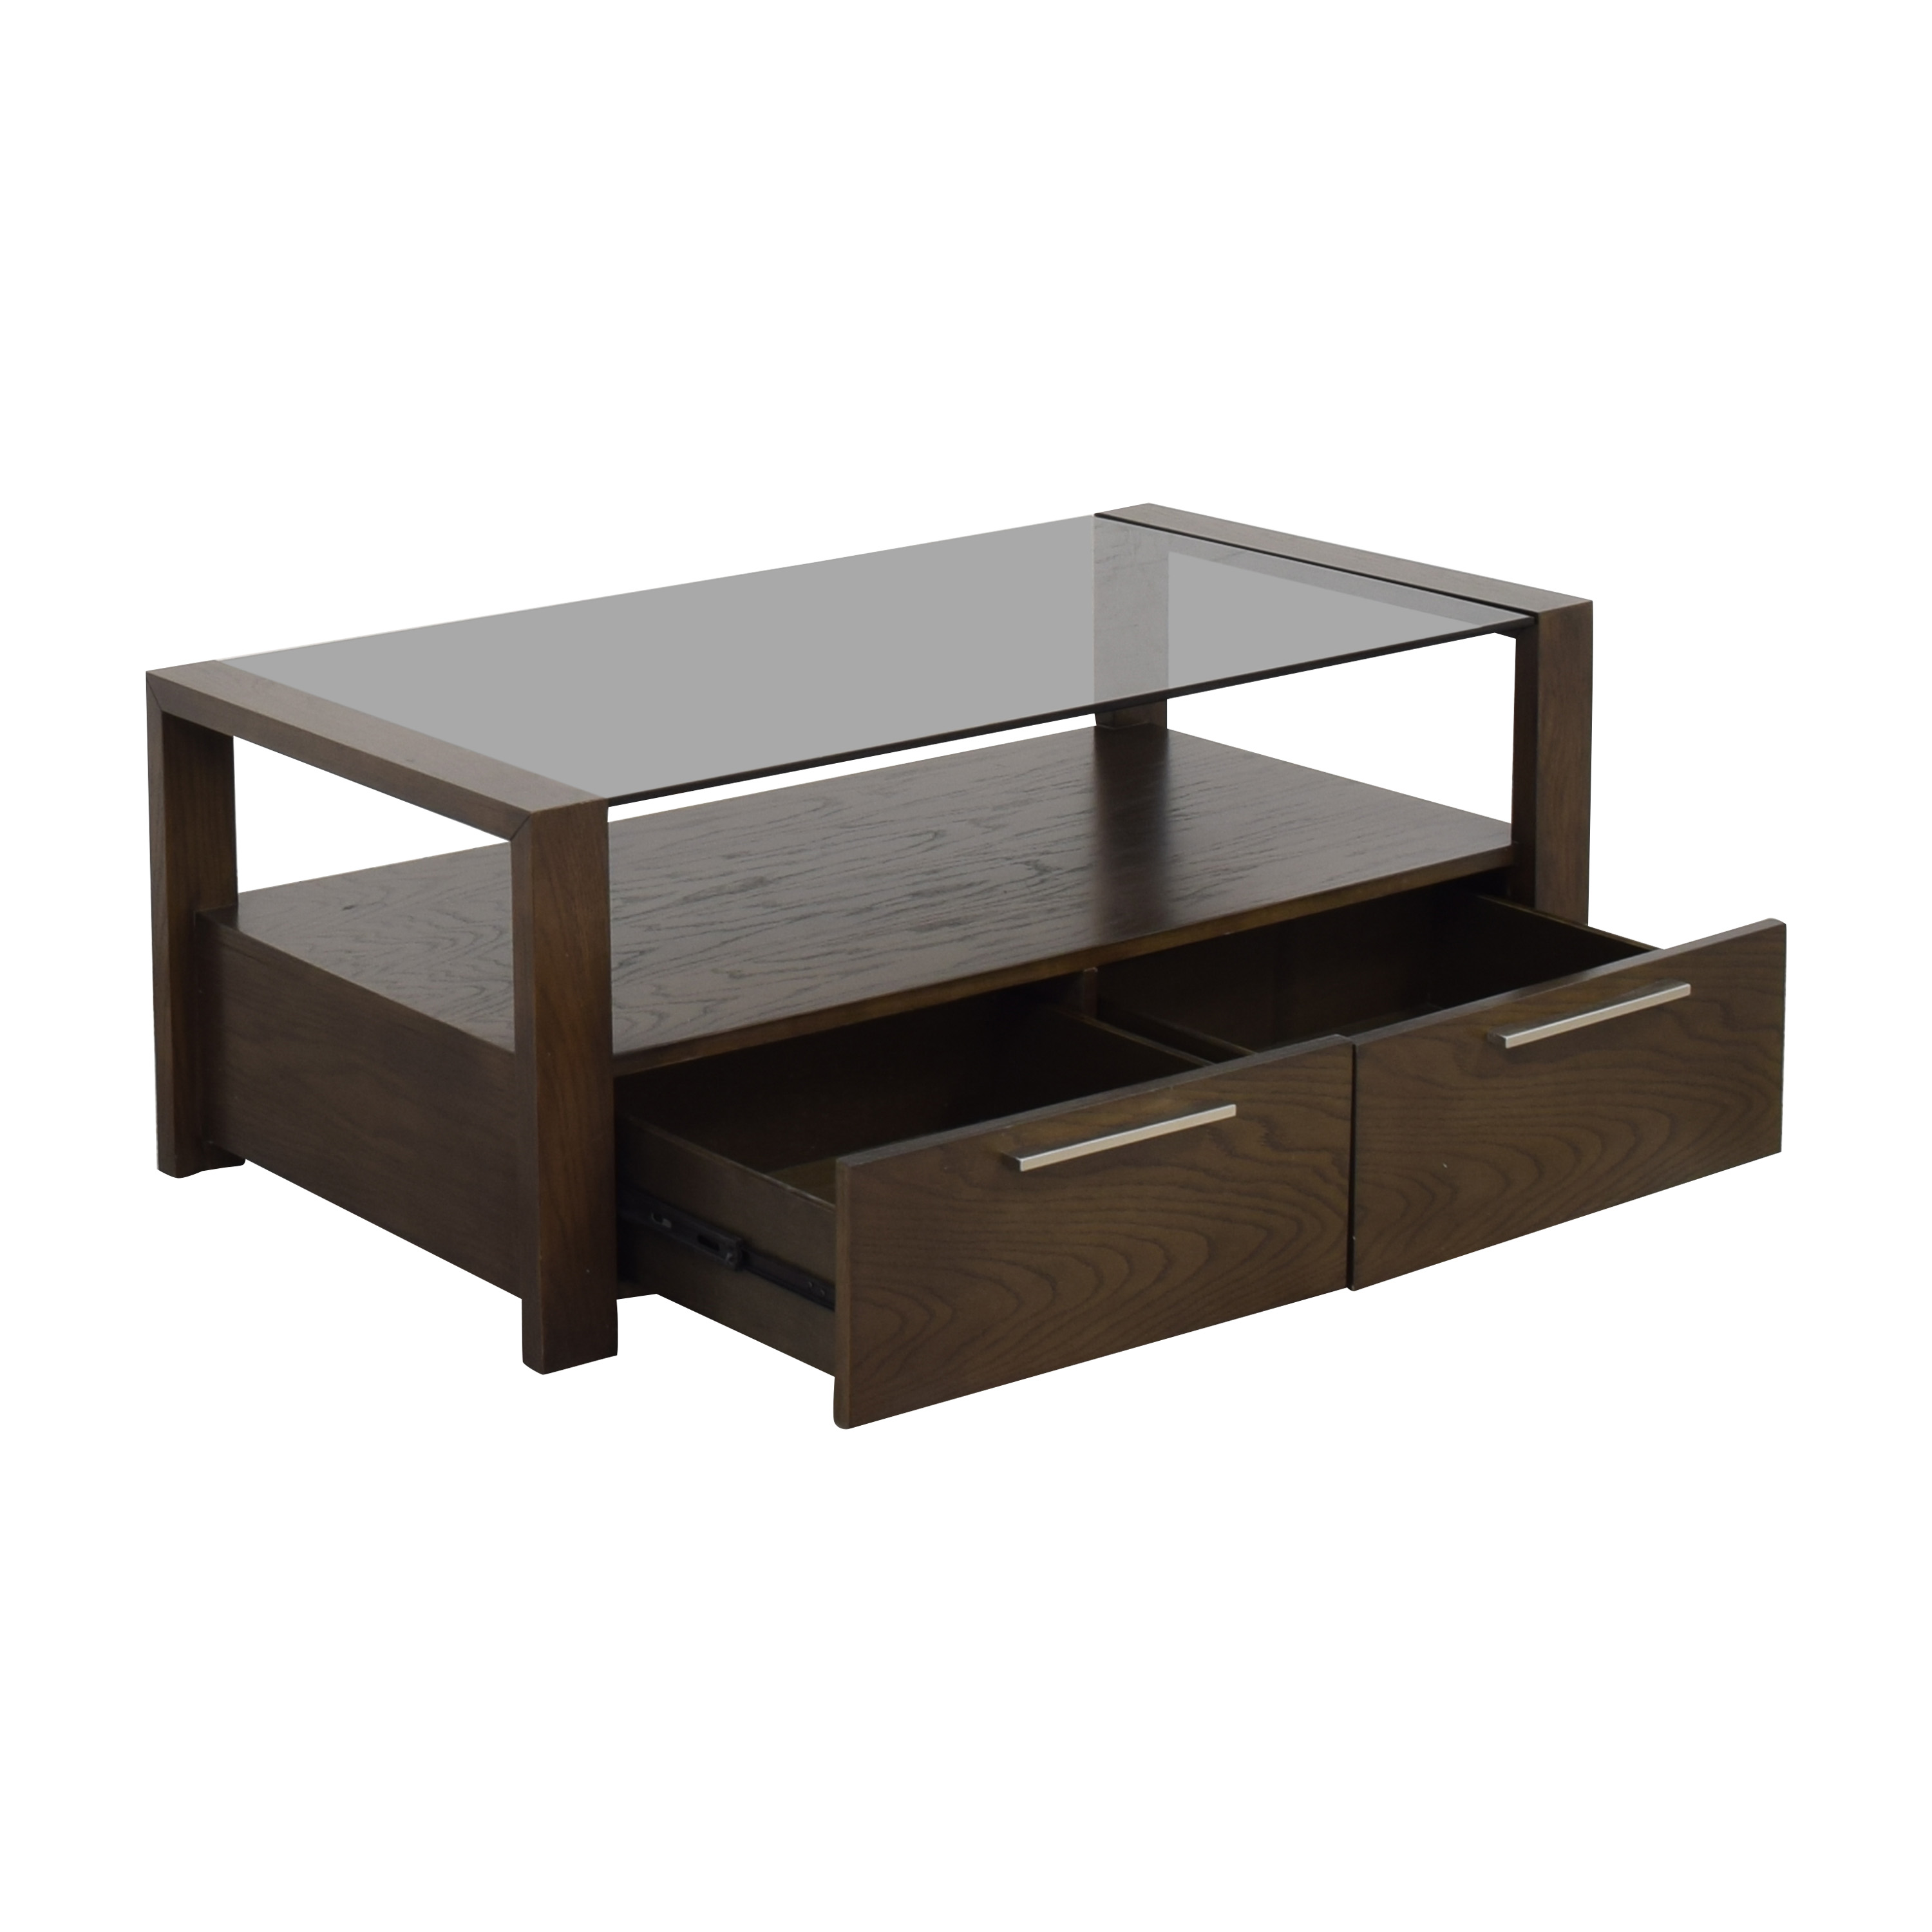 Macy's Macy's Modern Coffee Table with Drawers discount